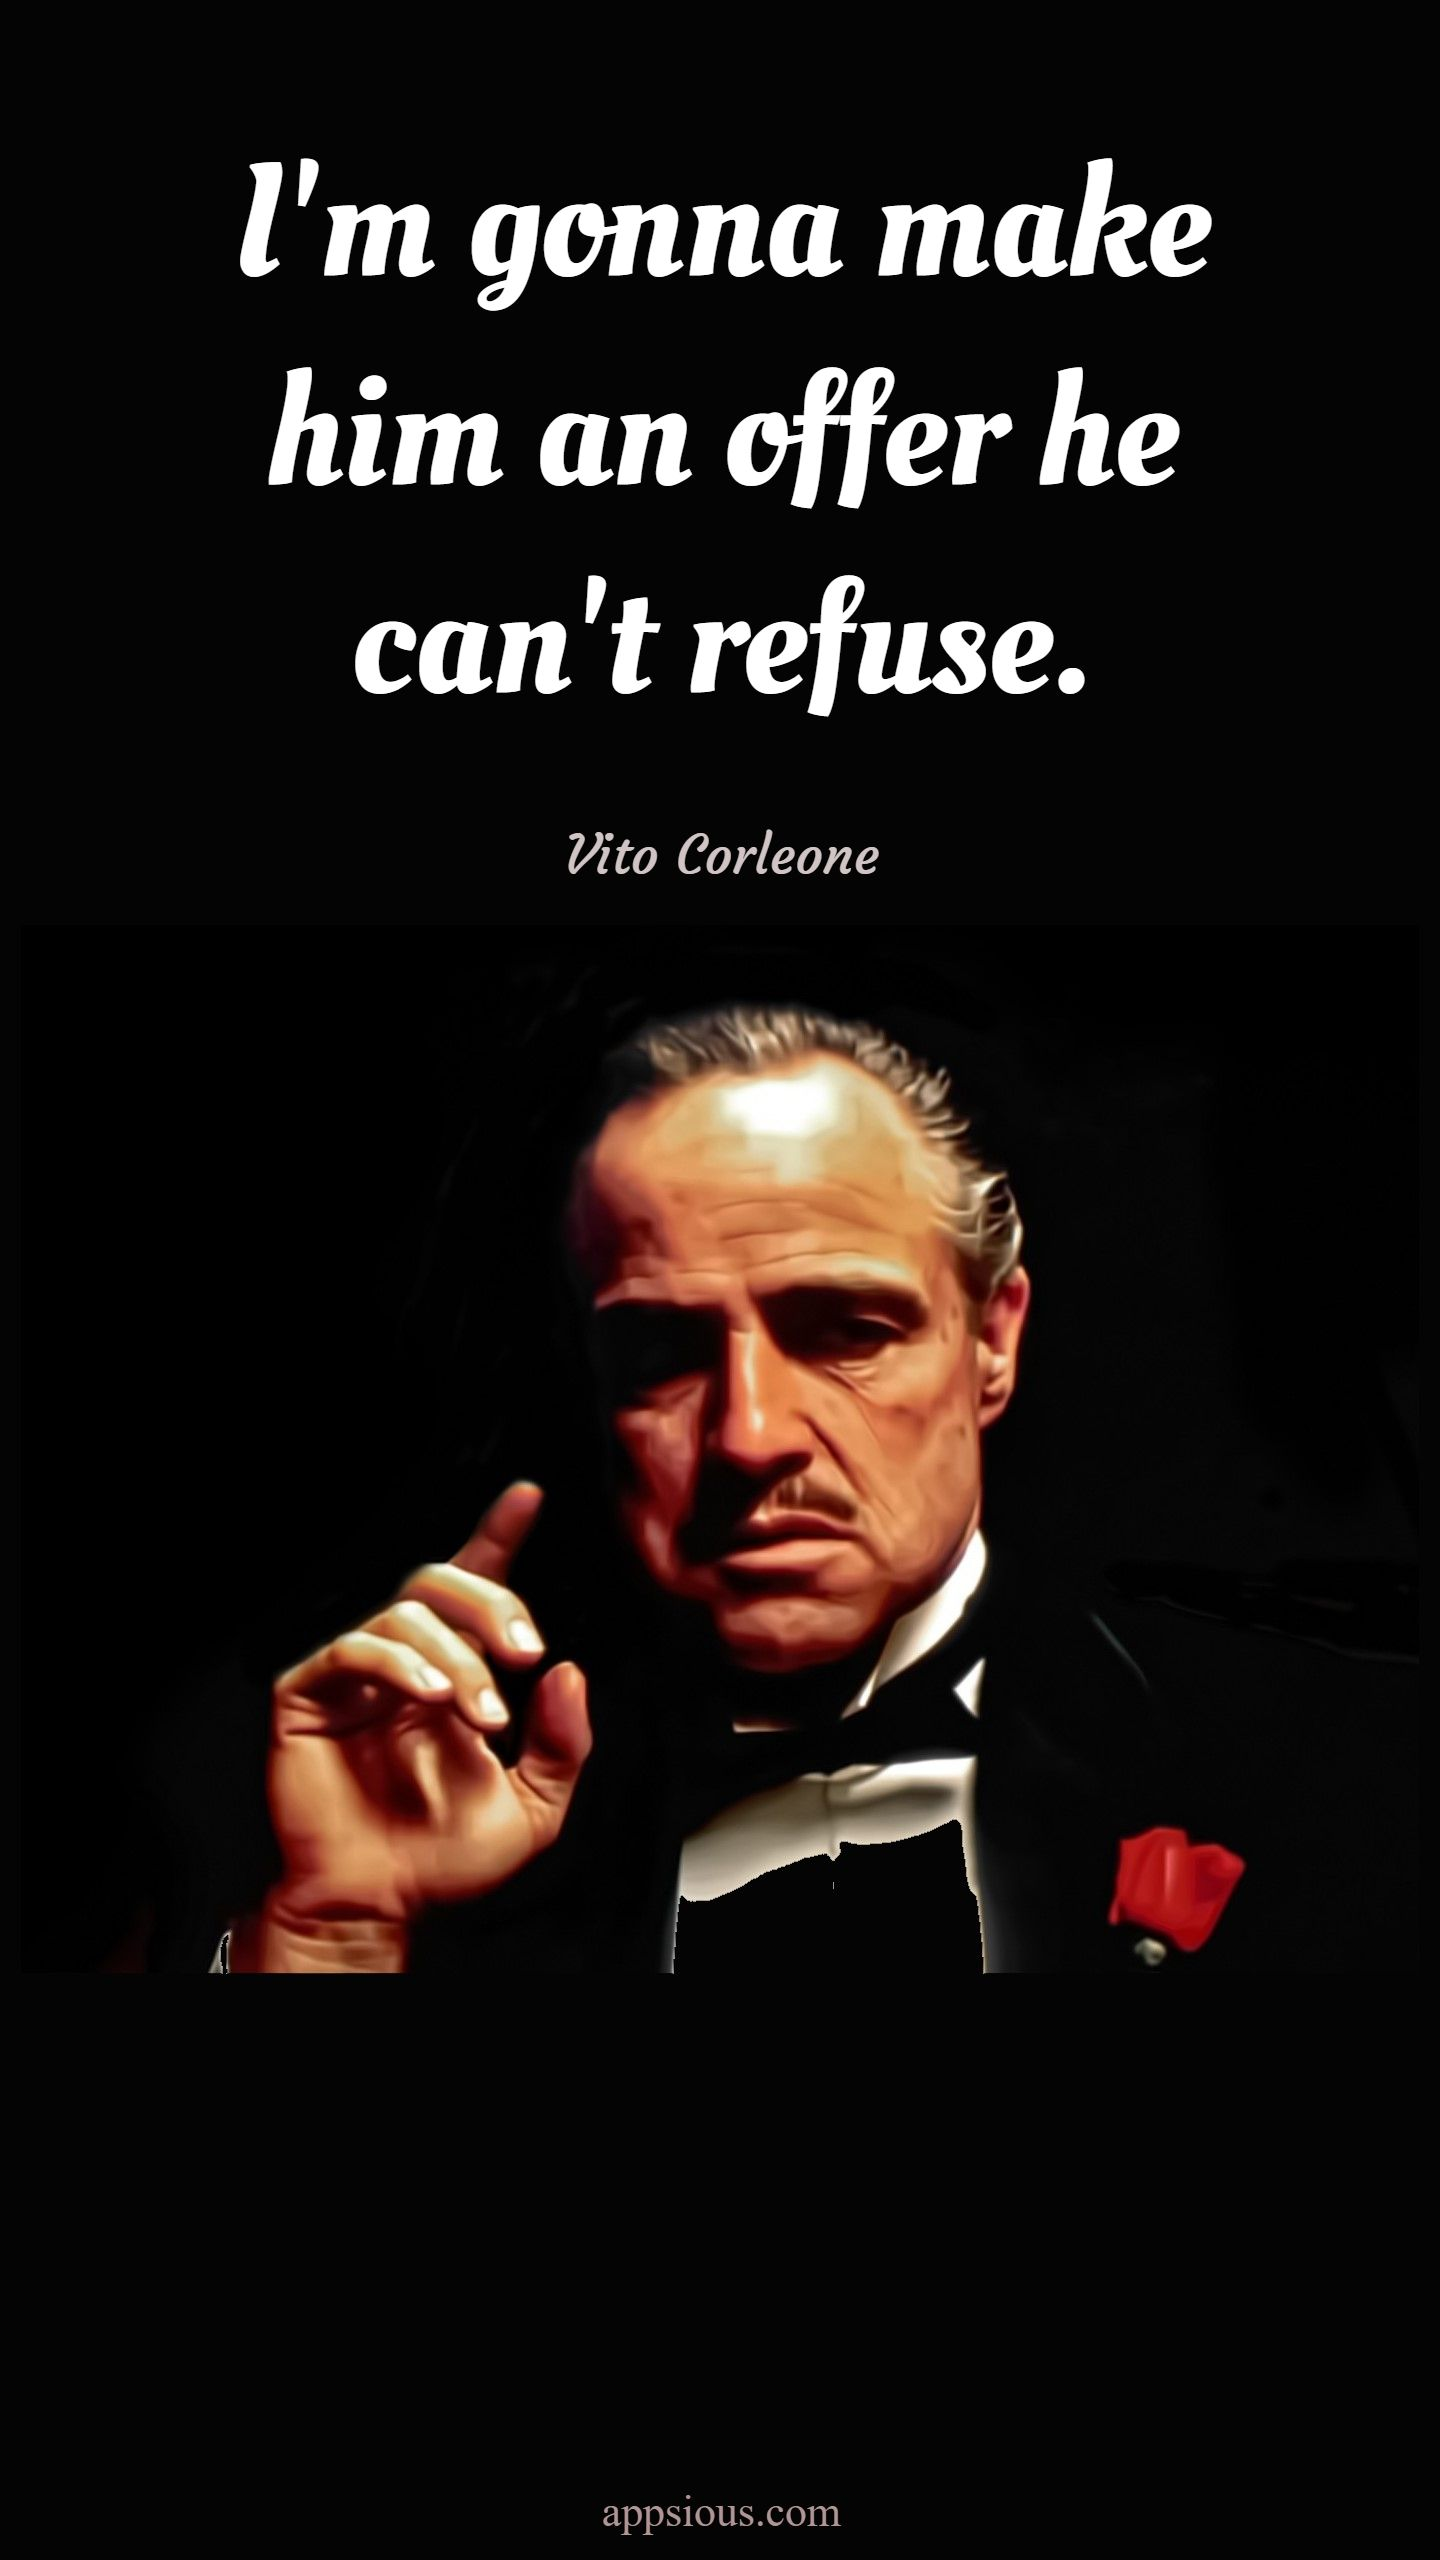 I'm gonna make him an offer he can't refuse.